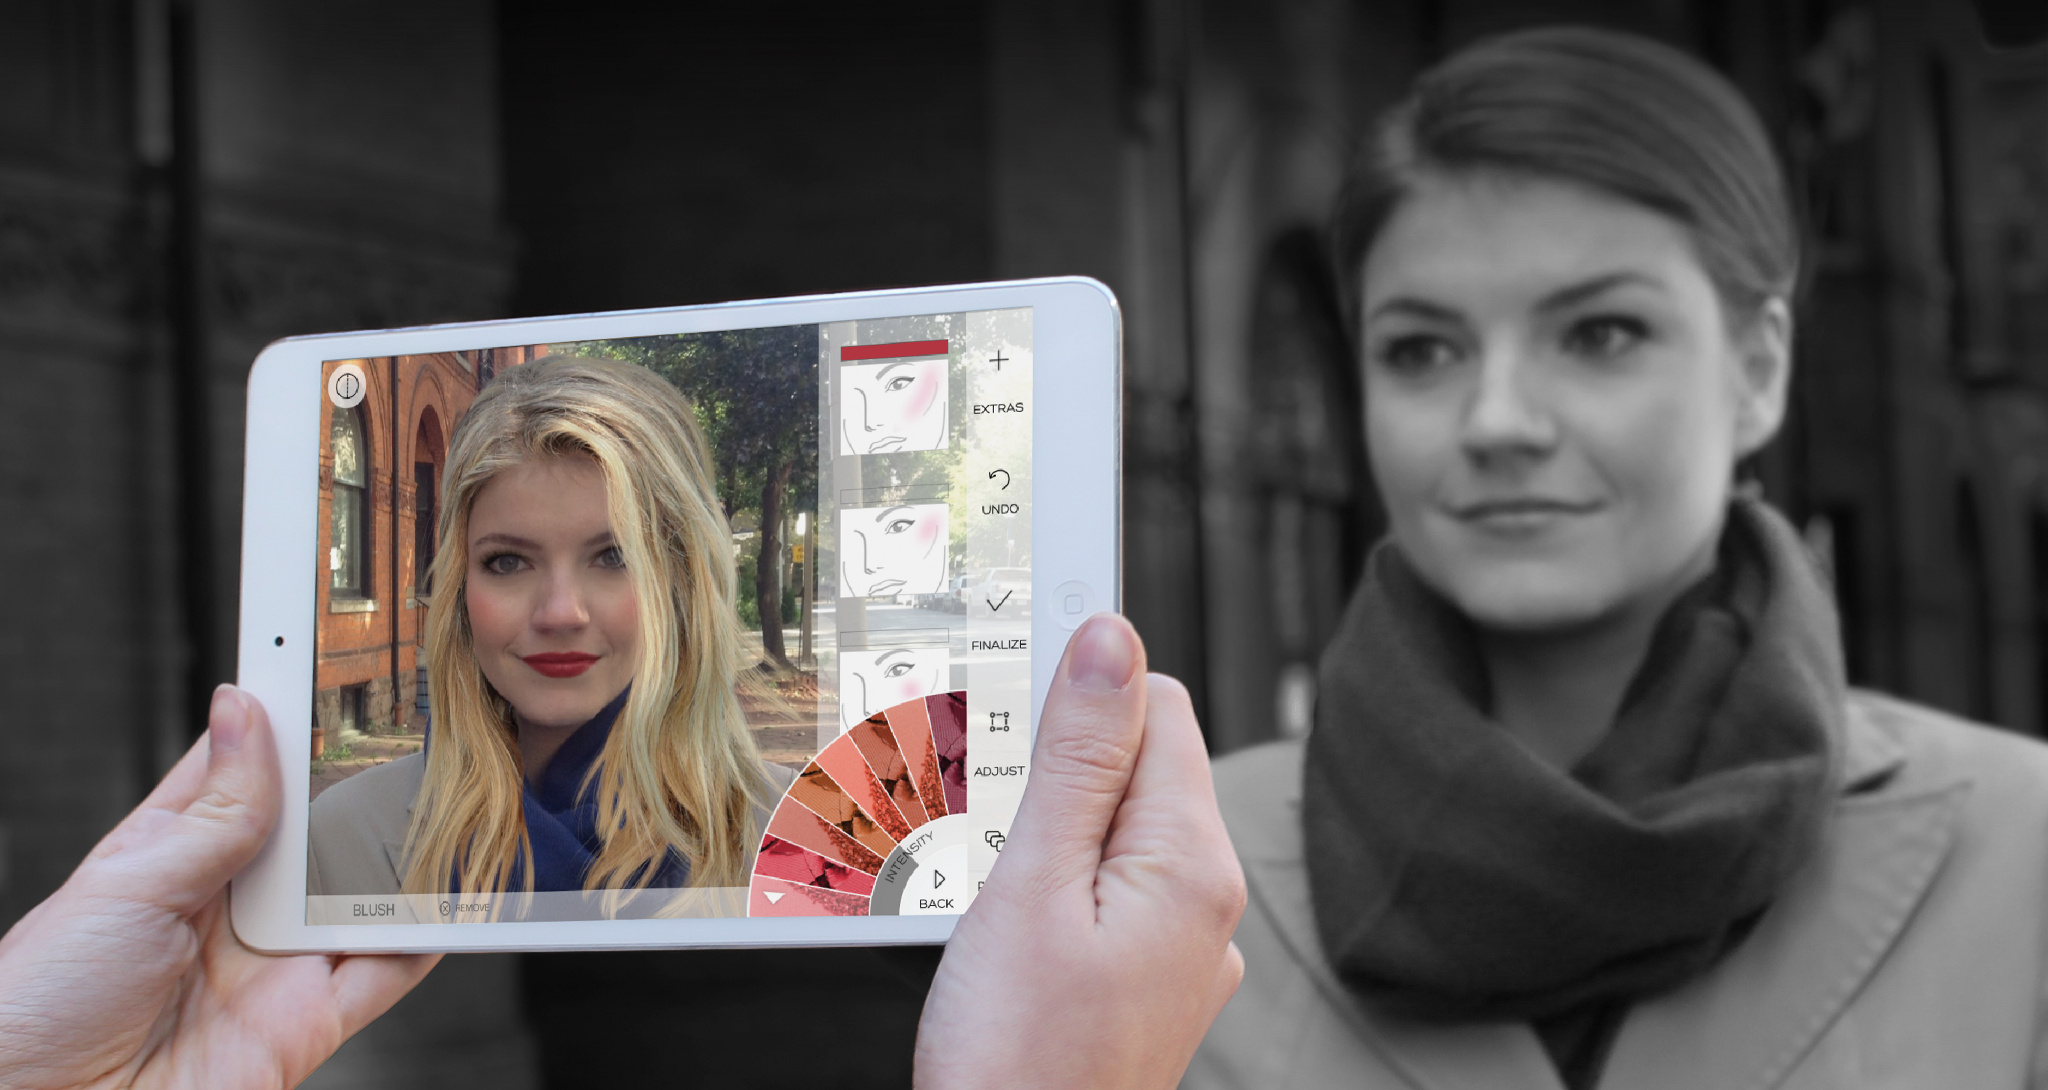 Using Augmented Reality Makeovers